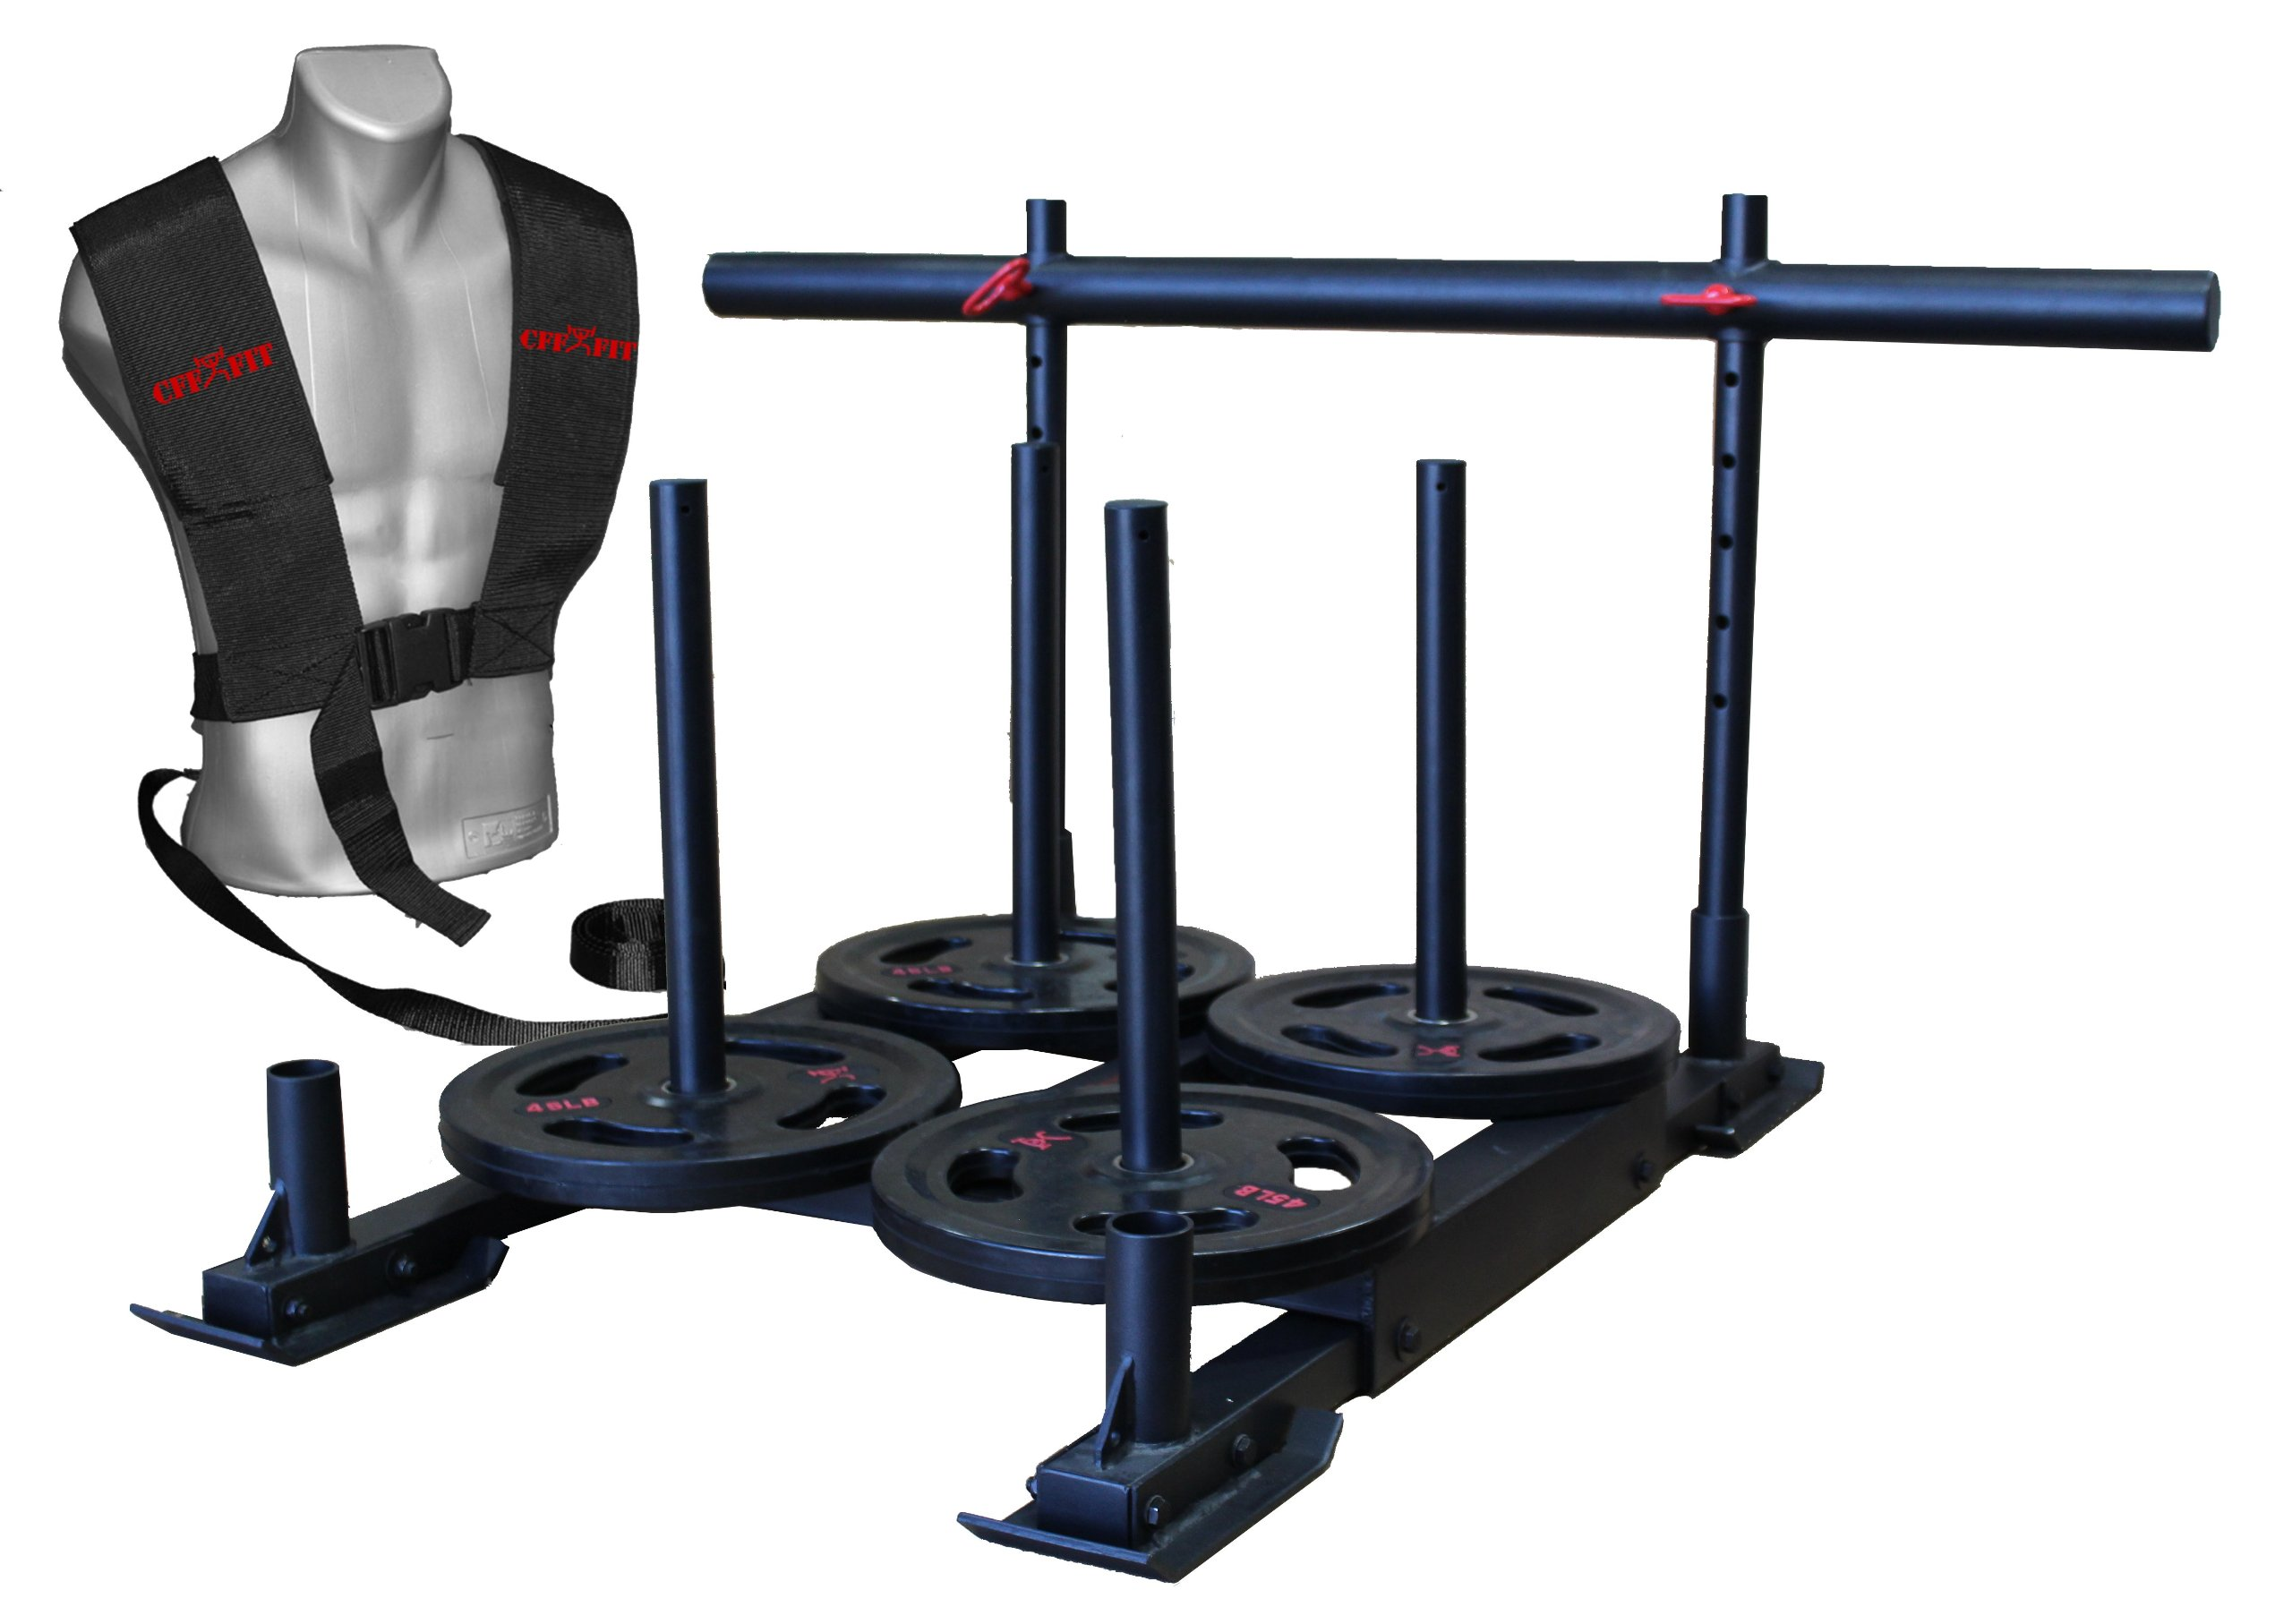 "CFF ""Alaskan"" Weighted Push, Pull Team Sled - Great for Cross Training, MMA, Boxing, Personal Training, Bootcamp by CFF (Image #4)"